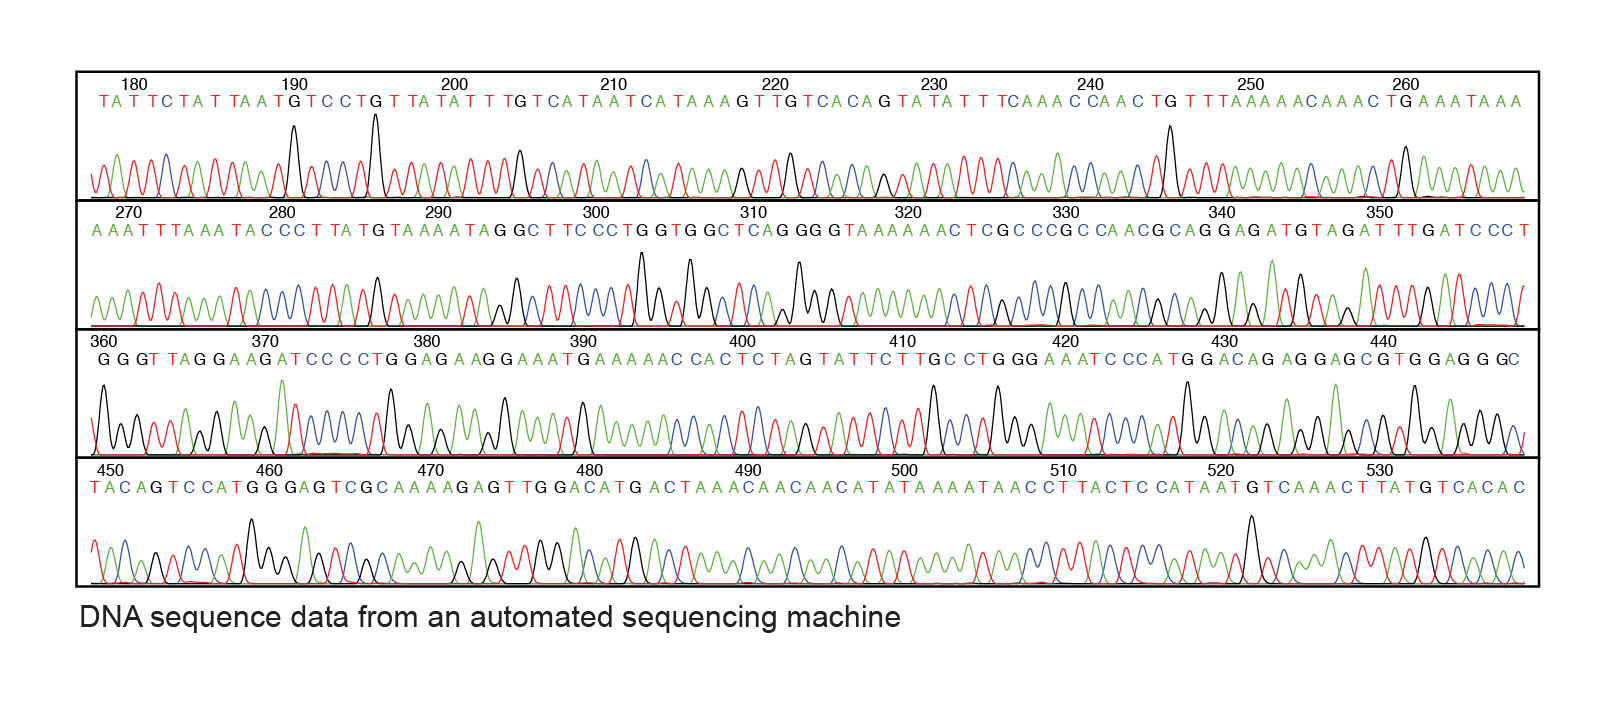 A chart indicating DNA sequence data from an automated sequencing machine.